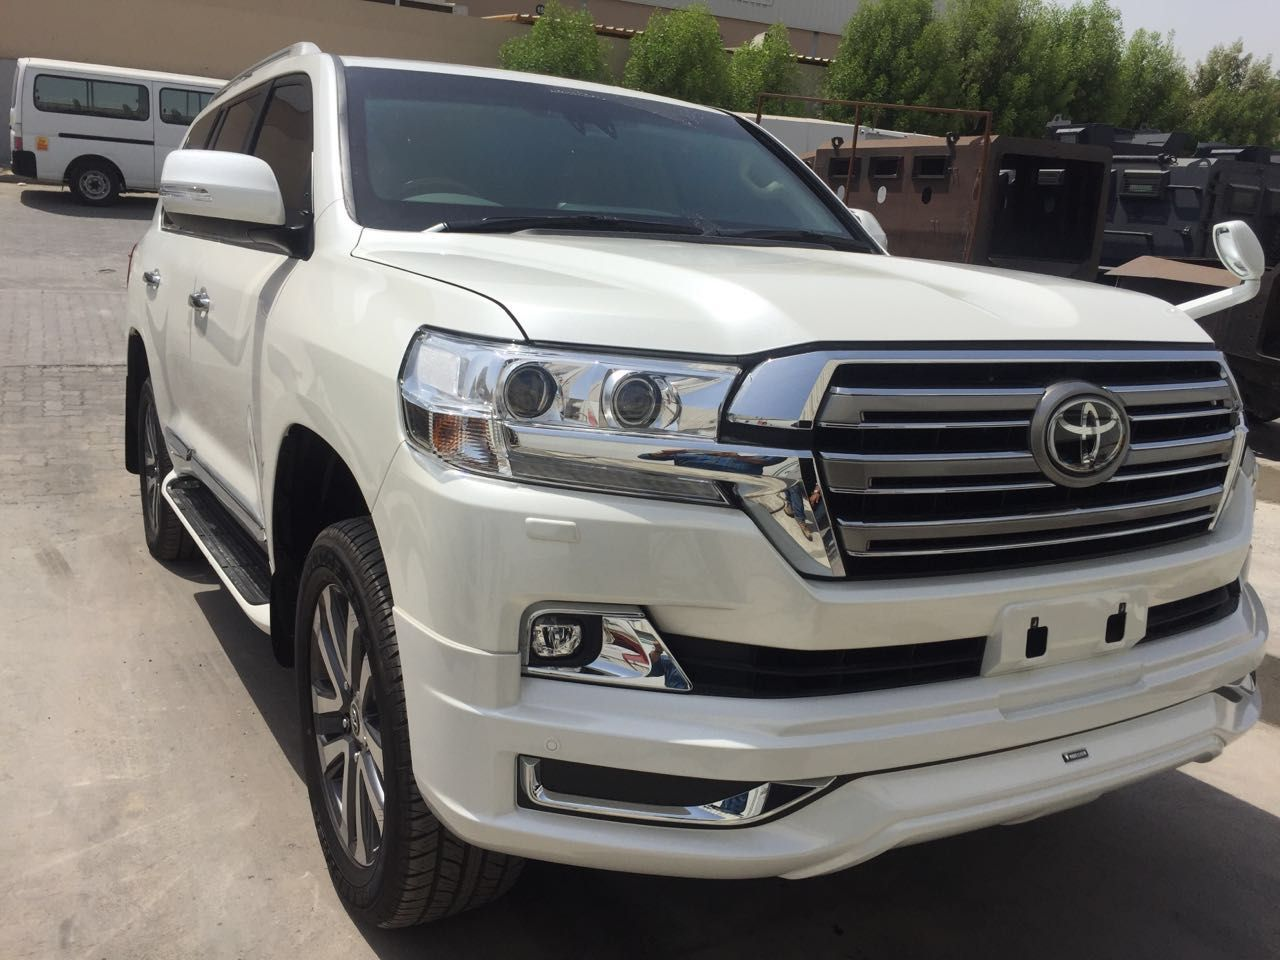 For Sale Top End Option Armored Landcruiser 4 6l V8 With All Features Land Cruiser Toyota Land Cruiser Armored Vehicles